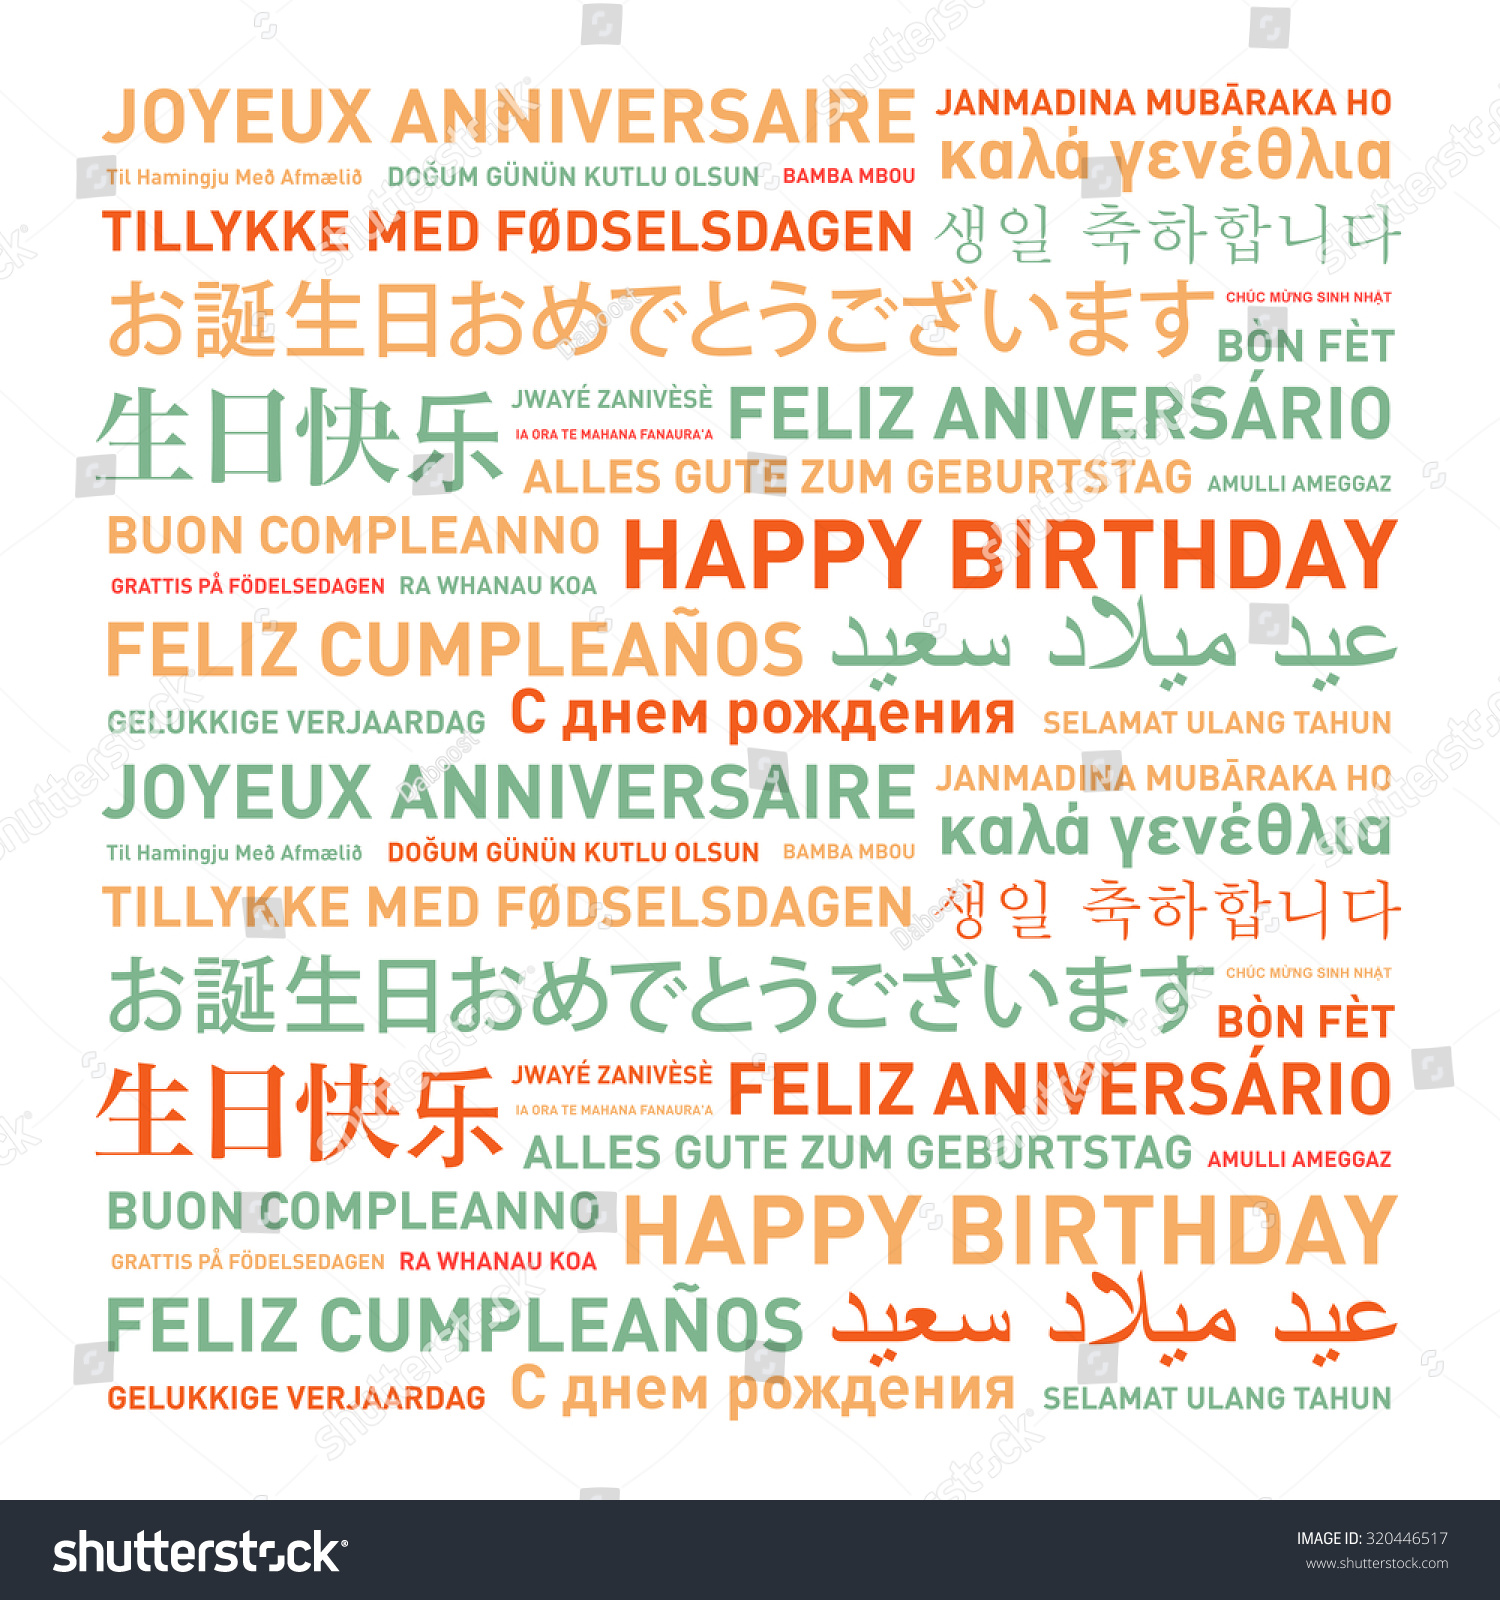 Happy Birthday From The World. Different Languages